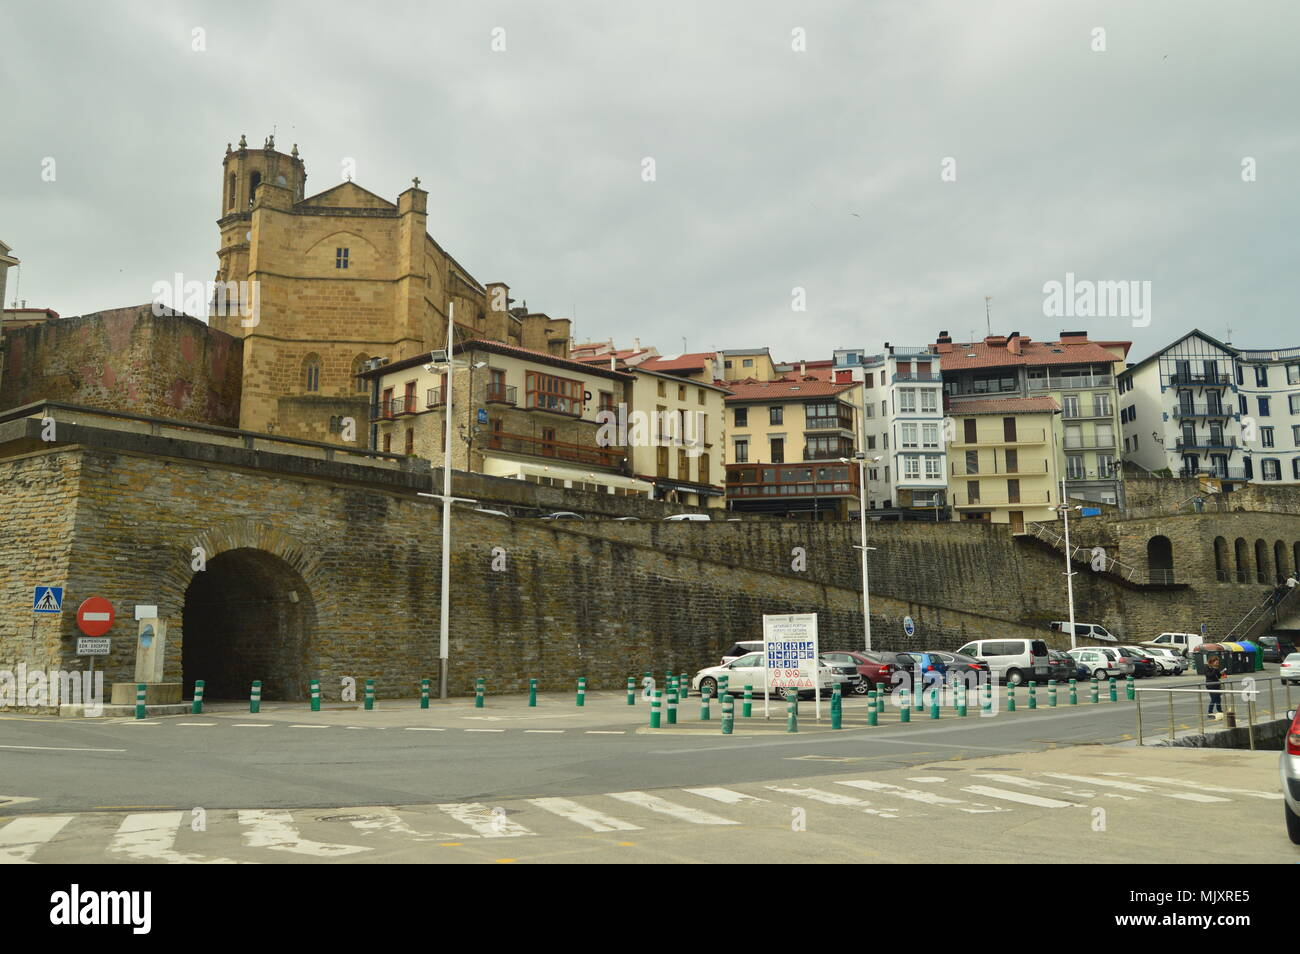 Beautiful Fortified Town Of Getaria Capture Taken From Its Beautiful Harbor. Architecture Middle Ages Travel. March 26, 2018. Getaria Guipuzcoa Basque - Stock Image